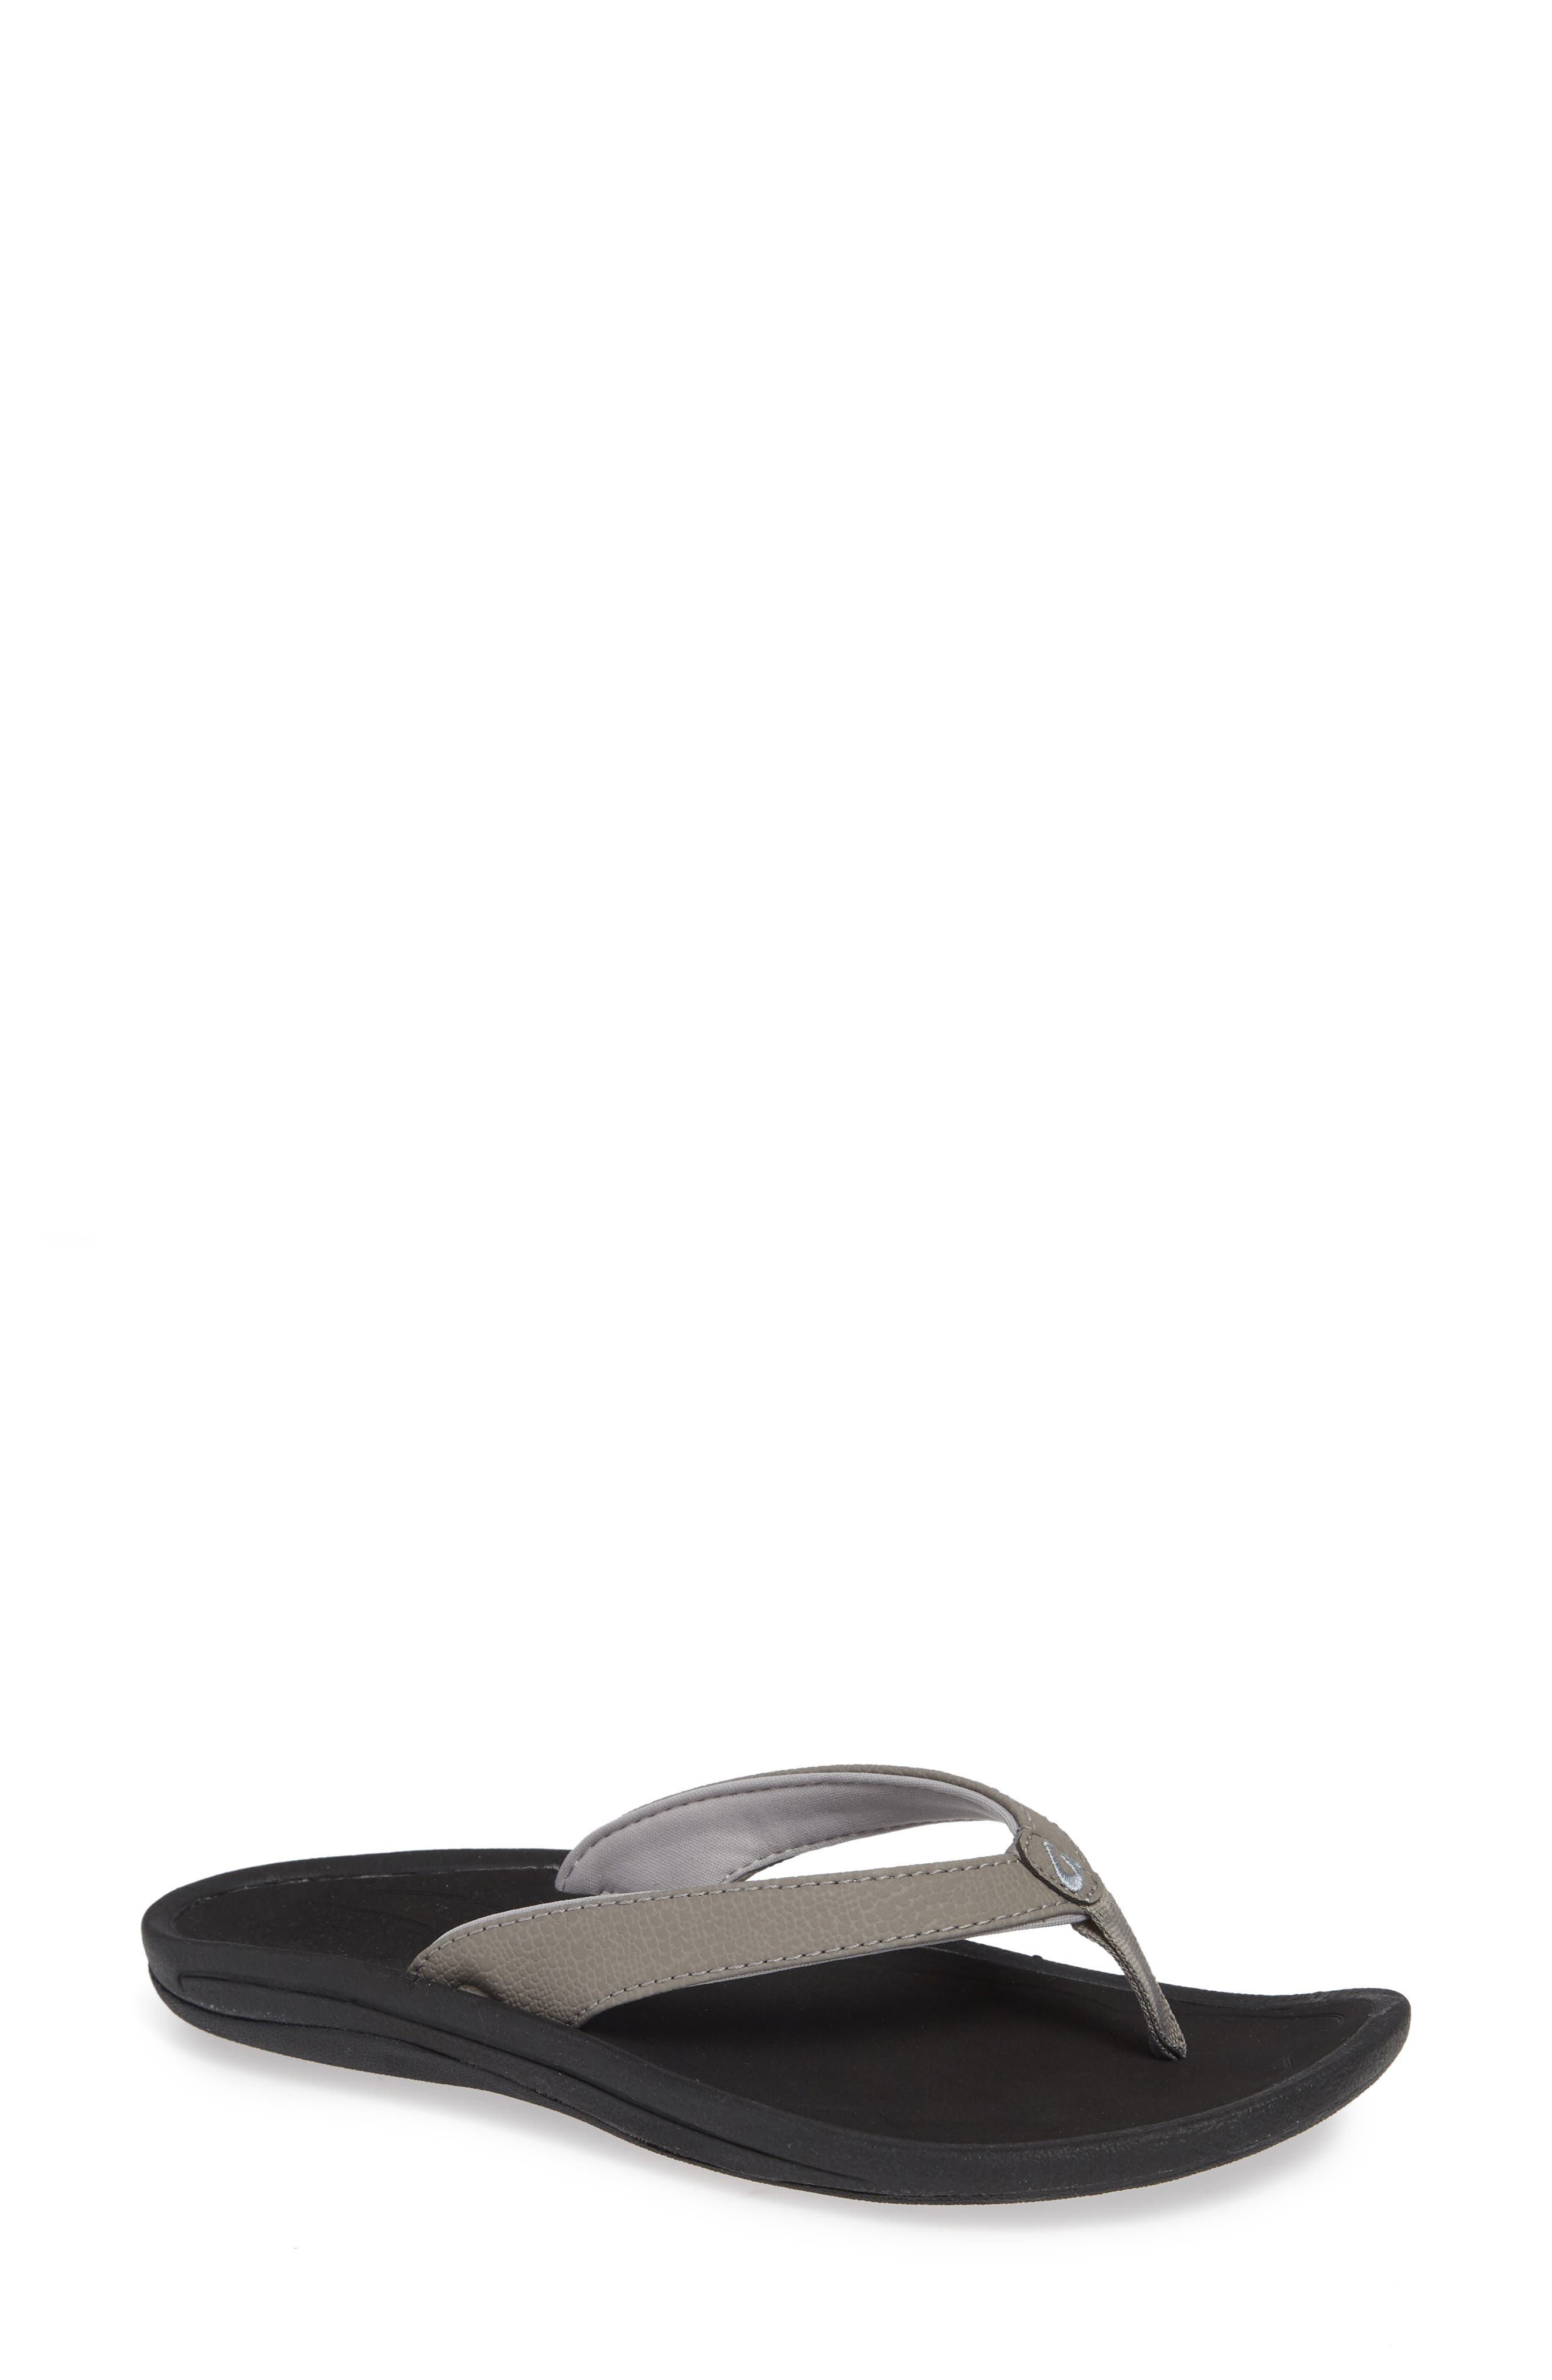 'Kulapa Kai' Thong Sandal,                             Main thumbnail 1, color,                             FOG/ BLACK FABRIC